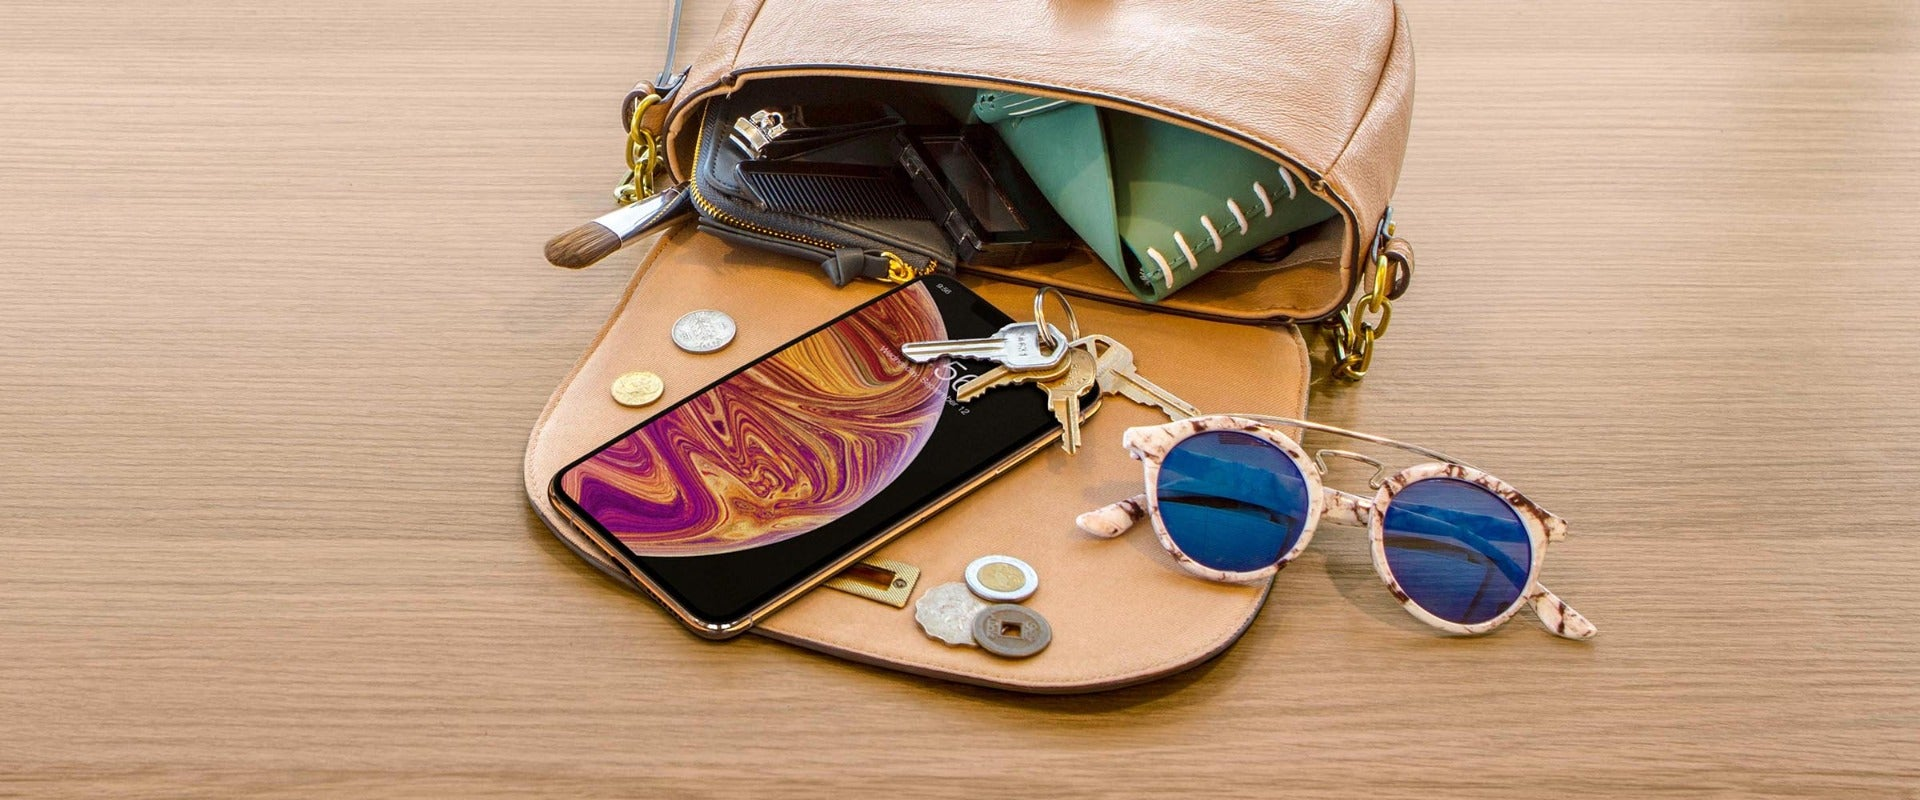 Purse with phone, keys, and change